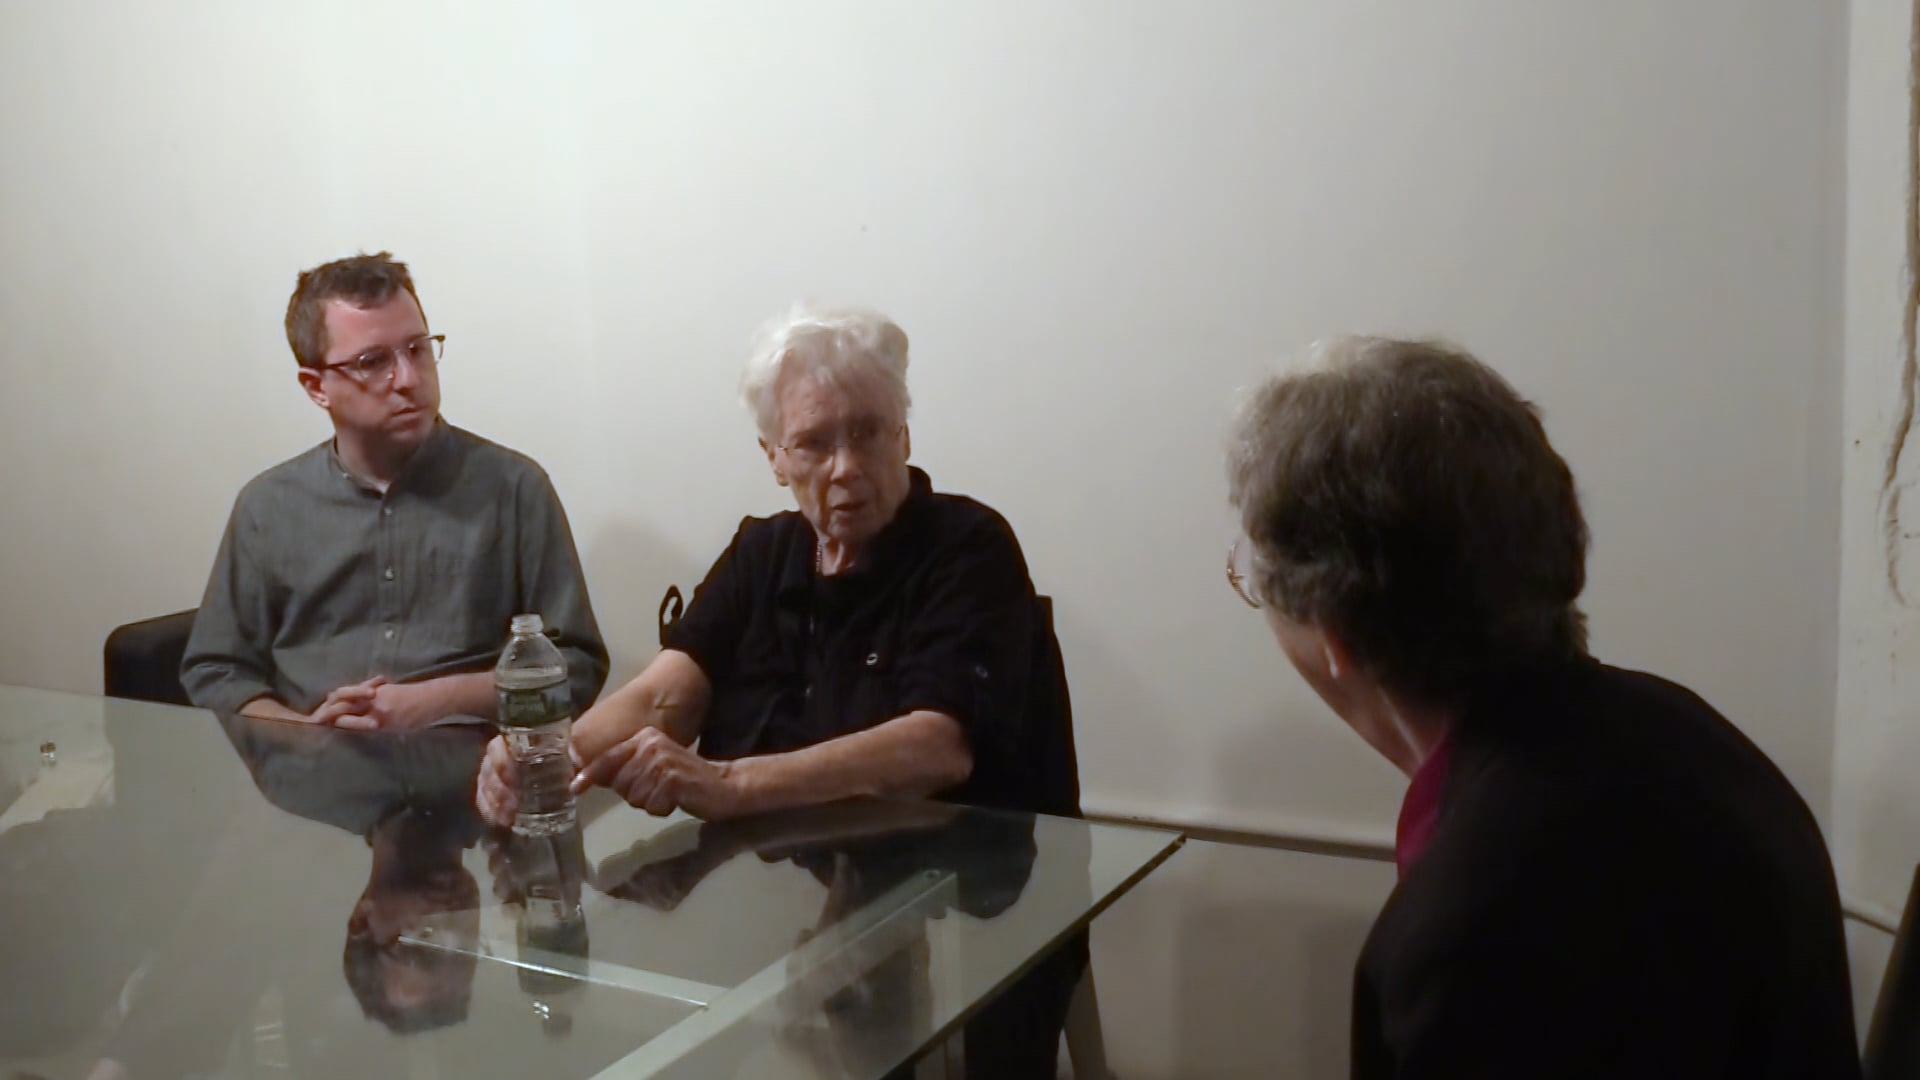 Interview with Pauline Oliveros and Seth Cluett